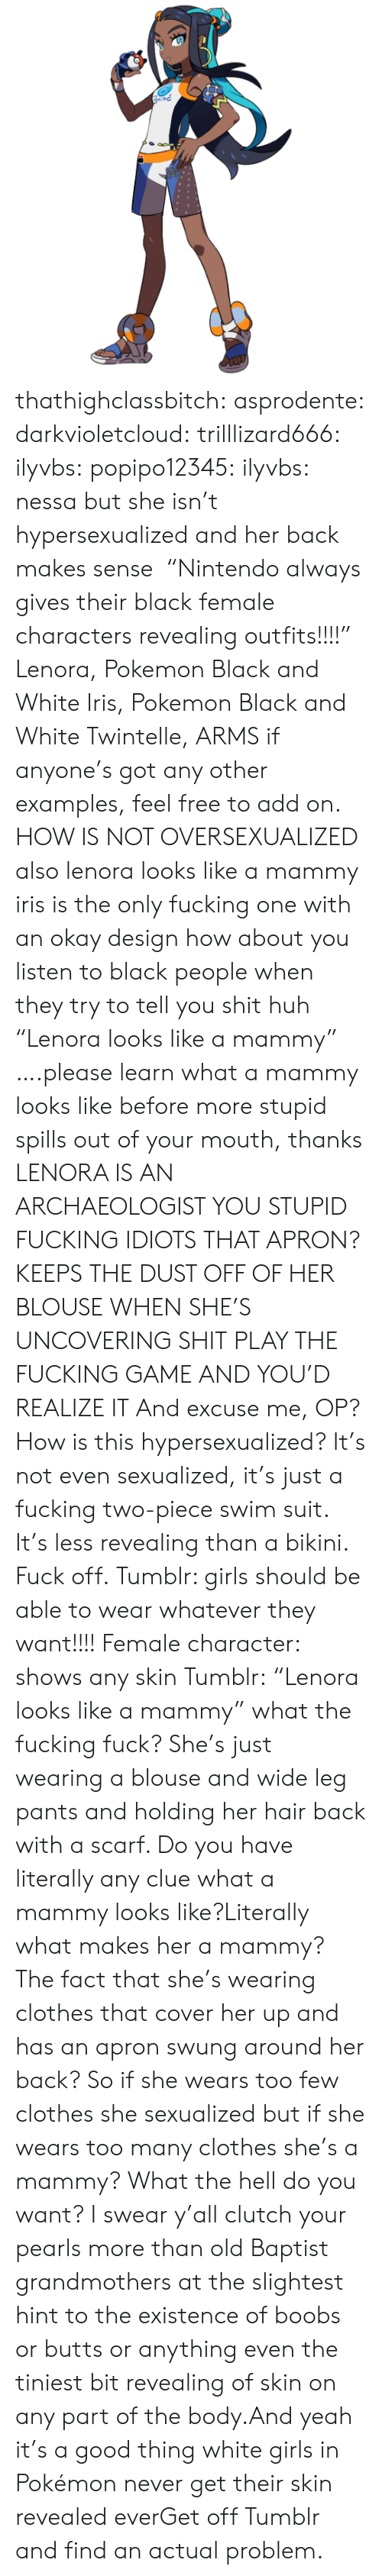 "Cover: Bend thathighclassbitch: asprodente:   darkvioletcloud:  trilllizard666:  ilyvbs:  popipo12345:  ilyvbs: nessa but she isn't hypersexualized and her back makes sense  ""Nintendo always gives their black female characters revealing outfits!!!!"" Lenora, Pokemon Black and White Iris, Pokemon Black and White Twintelle, ARMS  if anyone's got any other examples, feel free to add on.  HOW IS NOT OVERSEXUALIZED  also lenora looks like a mammy iris is the only fucking one with an okay design how about you listen to black people when they try to tell you shit huh  ""Lenora looks like a mammy"" ….please learn what a mammy looks like before more stupid spills out of your mouth, thanks  LENORA IS AN ARCHAEOLOGIST YOU STUPID FUCKING IDIOTS THAT APRON? KEEPS THE DUST OFF OF HER BLOUSE WHEN SHE'S UNCOVERING SHIT PLAY THE FUCKING GAME AND YOU'D REALIZE IT  And excuse me, OP? How is this hypersexualized? It's not even sexualized, it's just a fucking two-piece swim suit. It's less revealing than a bikini. Fuck off.   Tumblr: girls should be able to wear whatever they want!!!! Female character: shows any skin Tumblr:   ""Lenora looks like a mammy"" what the fucking fuck? She's just wearing a blouse and wide leg pants and holding her hair back with a scarf. Do you have literally any clue what a mammy looks like?Literally what makes her a mammy? The fact that she's wearing clothes that cover her up and has an apron swung around her back? So if she wears too few clothes she sexualized but if she wears too many clothes she's a mammy? What the hell do you want? I swear y'all clutch your pearls more than old Baptist grandmothers at the slightest hint to the existence of boobs or butts or anything even the tiniest bit revealing of skin on any part of the body.And yeah it's a good thing white girls in Pokémon never get their skin revealed everGet off Tumblr and find an actual problem."